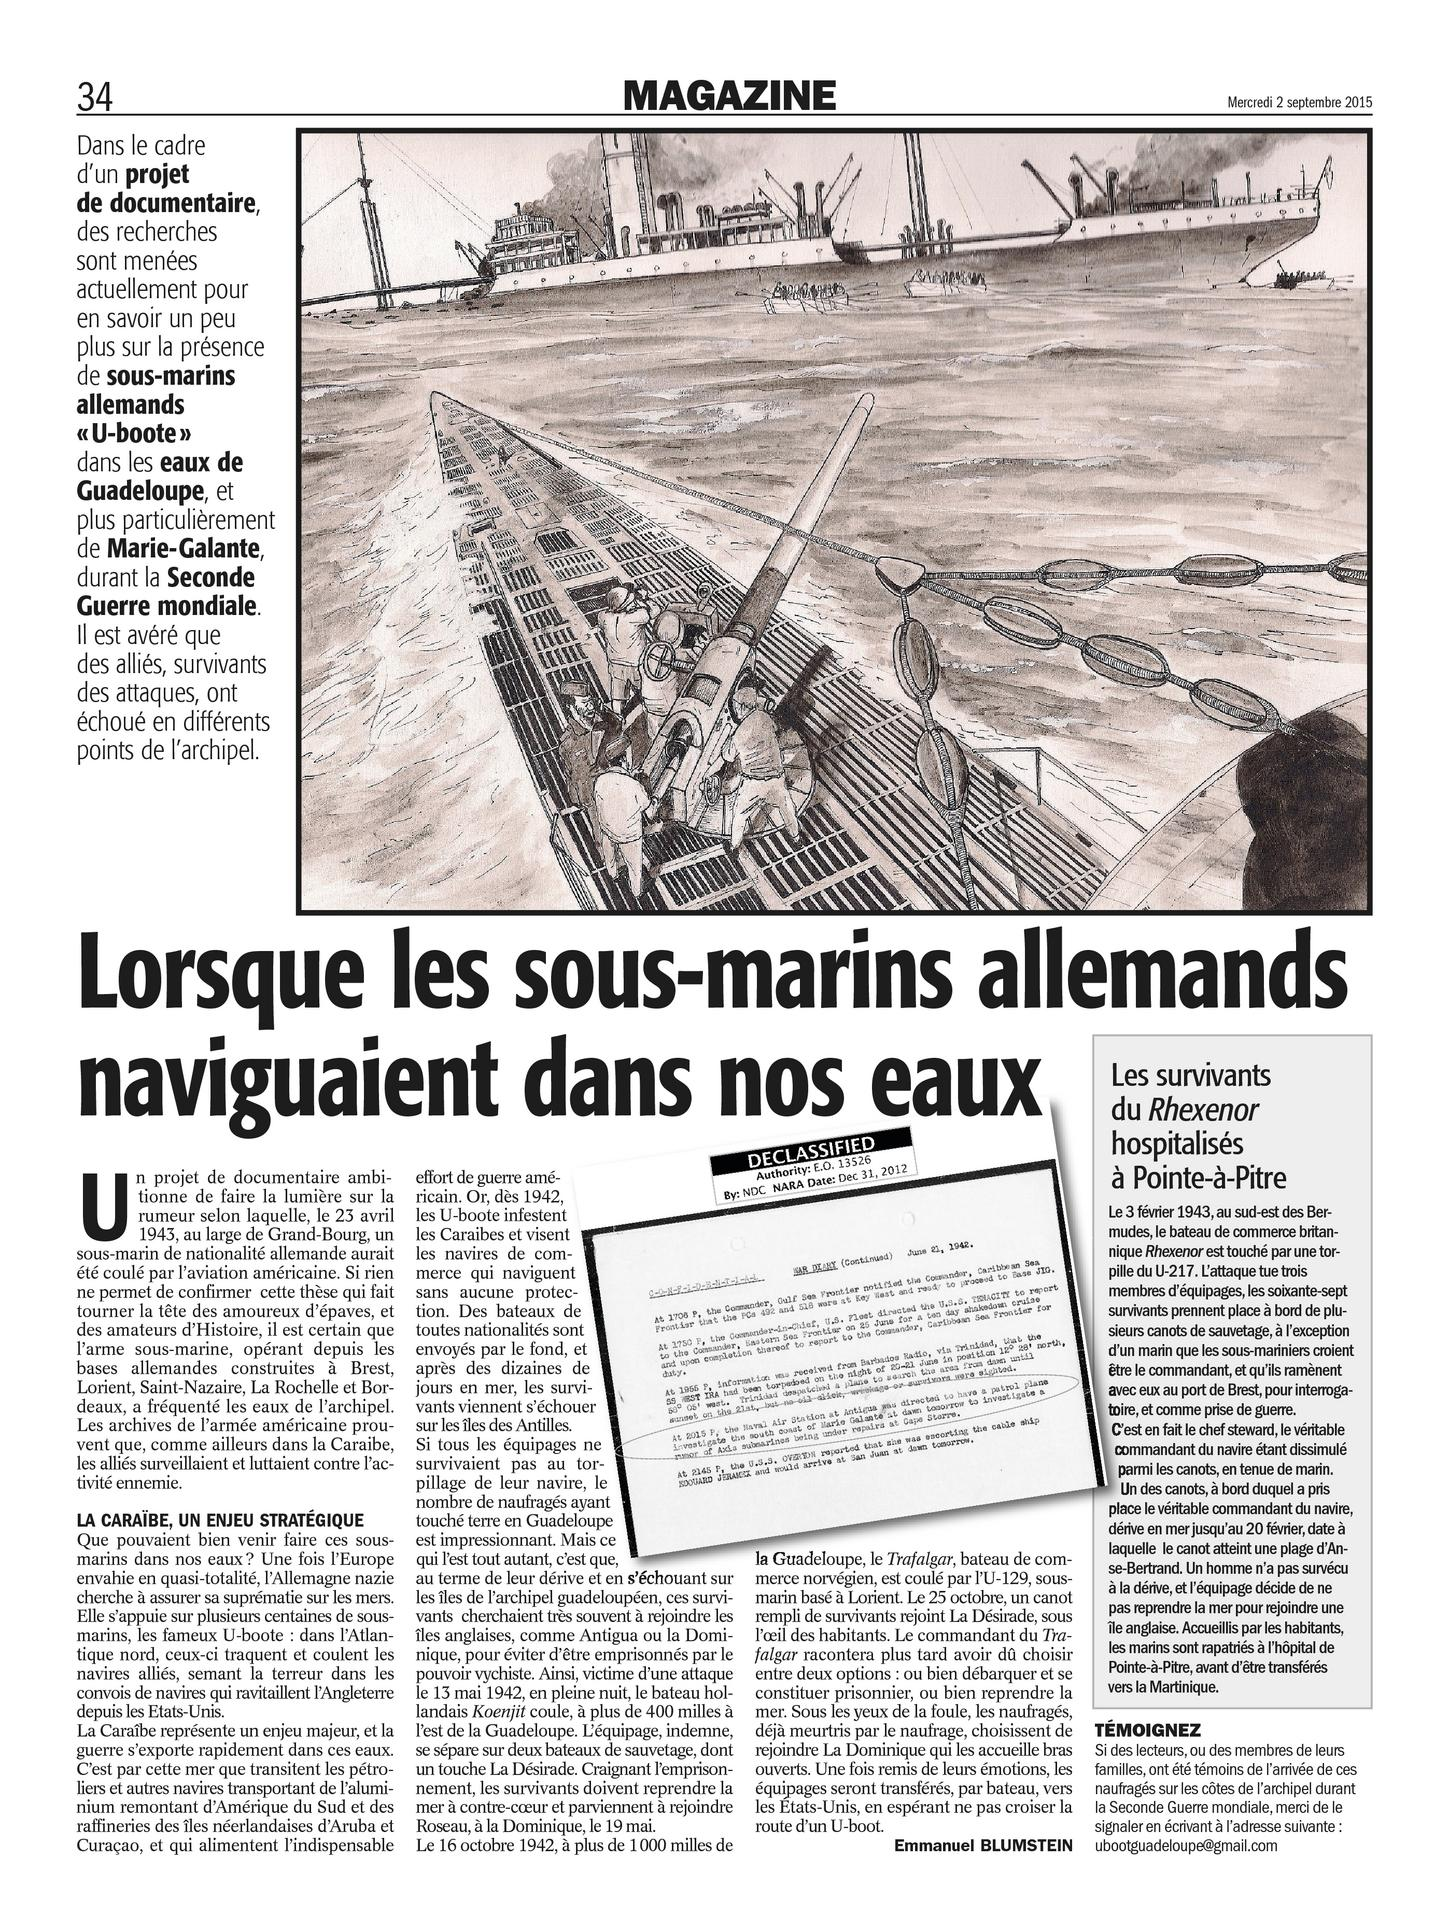 ARTICLE NAUFRAGS FRANCE-ANTILLES.jpg